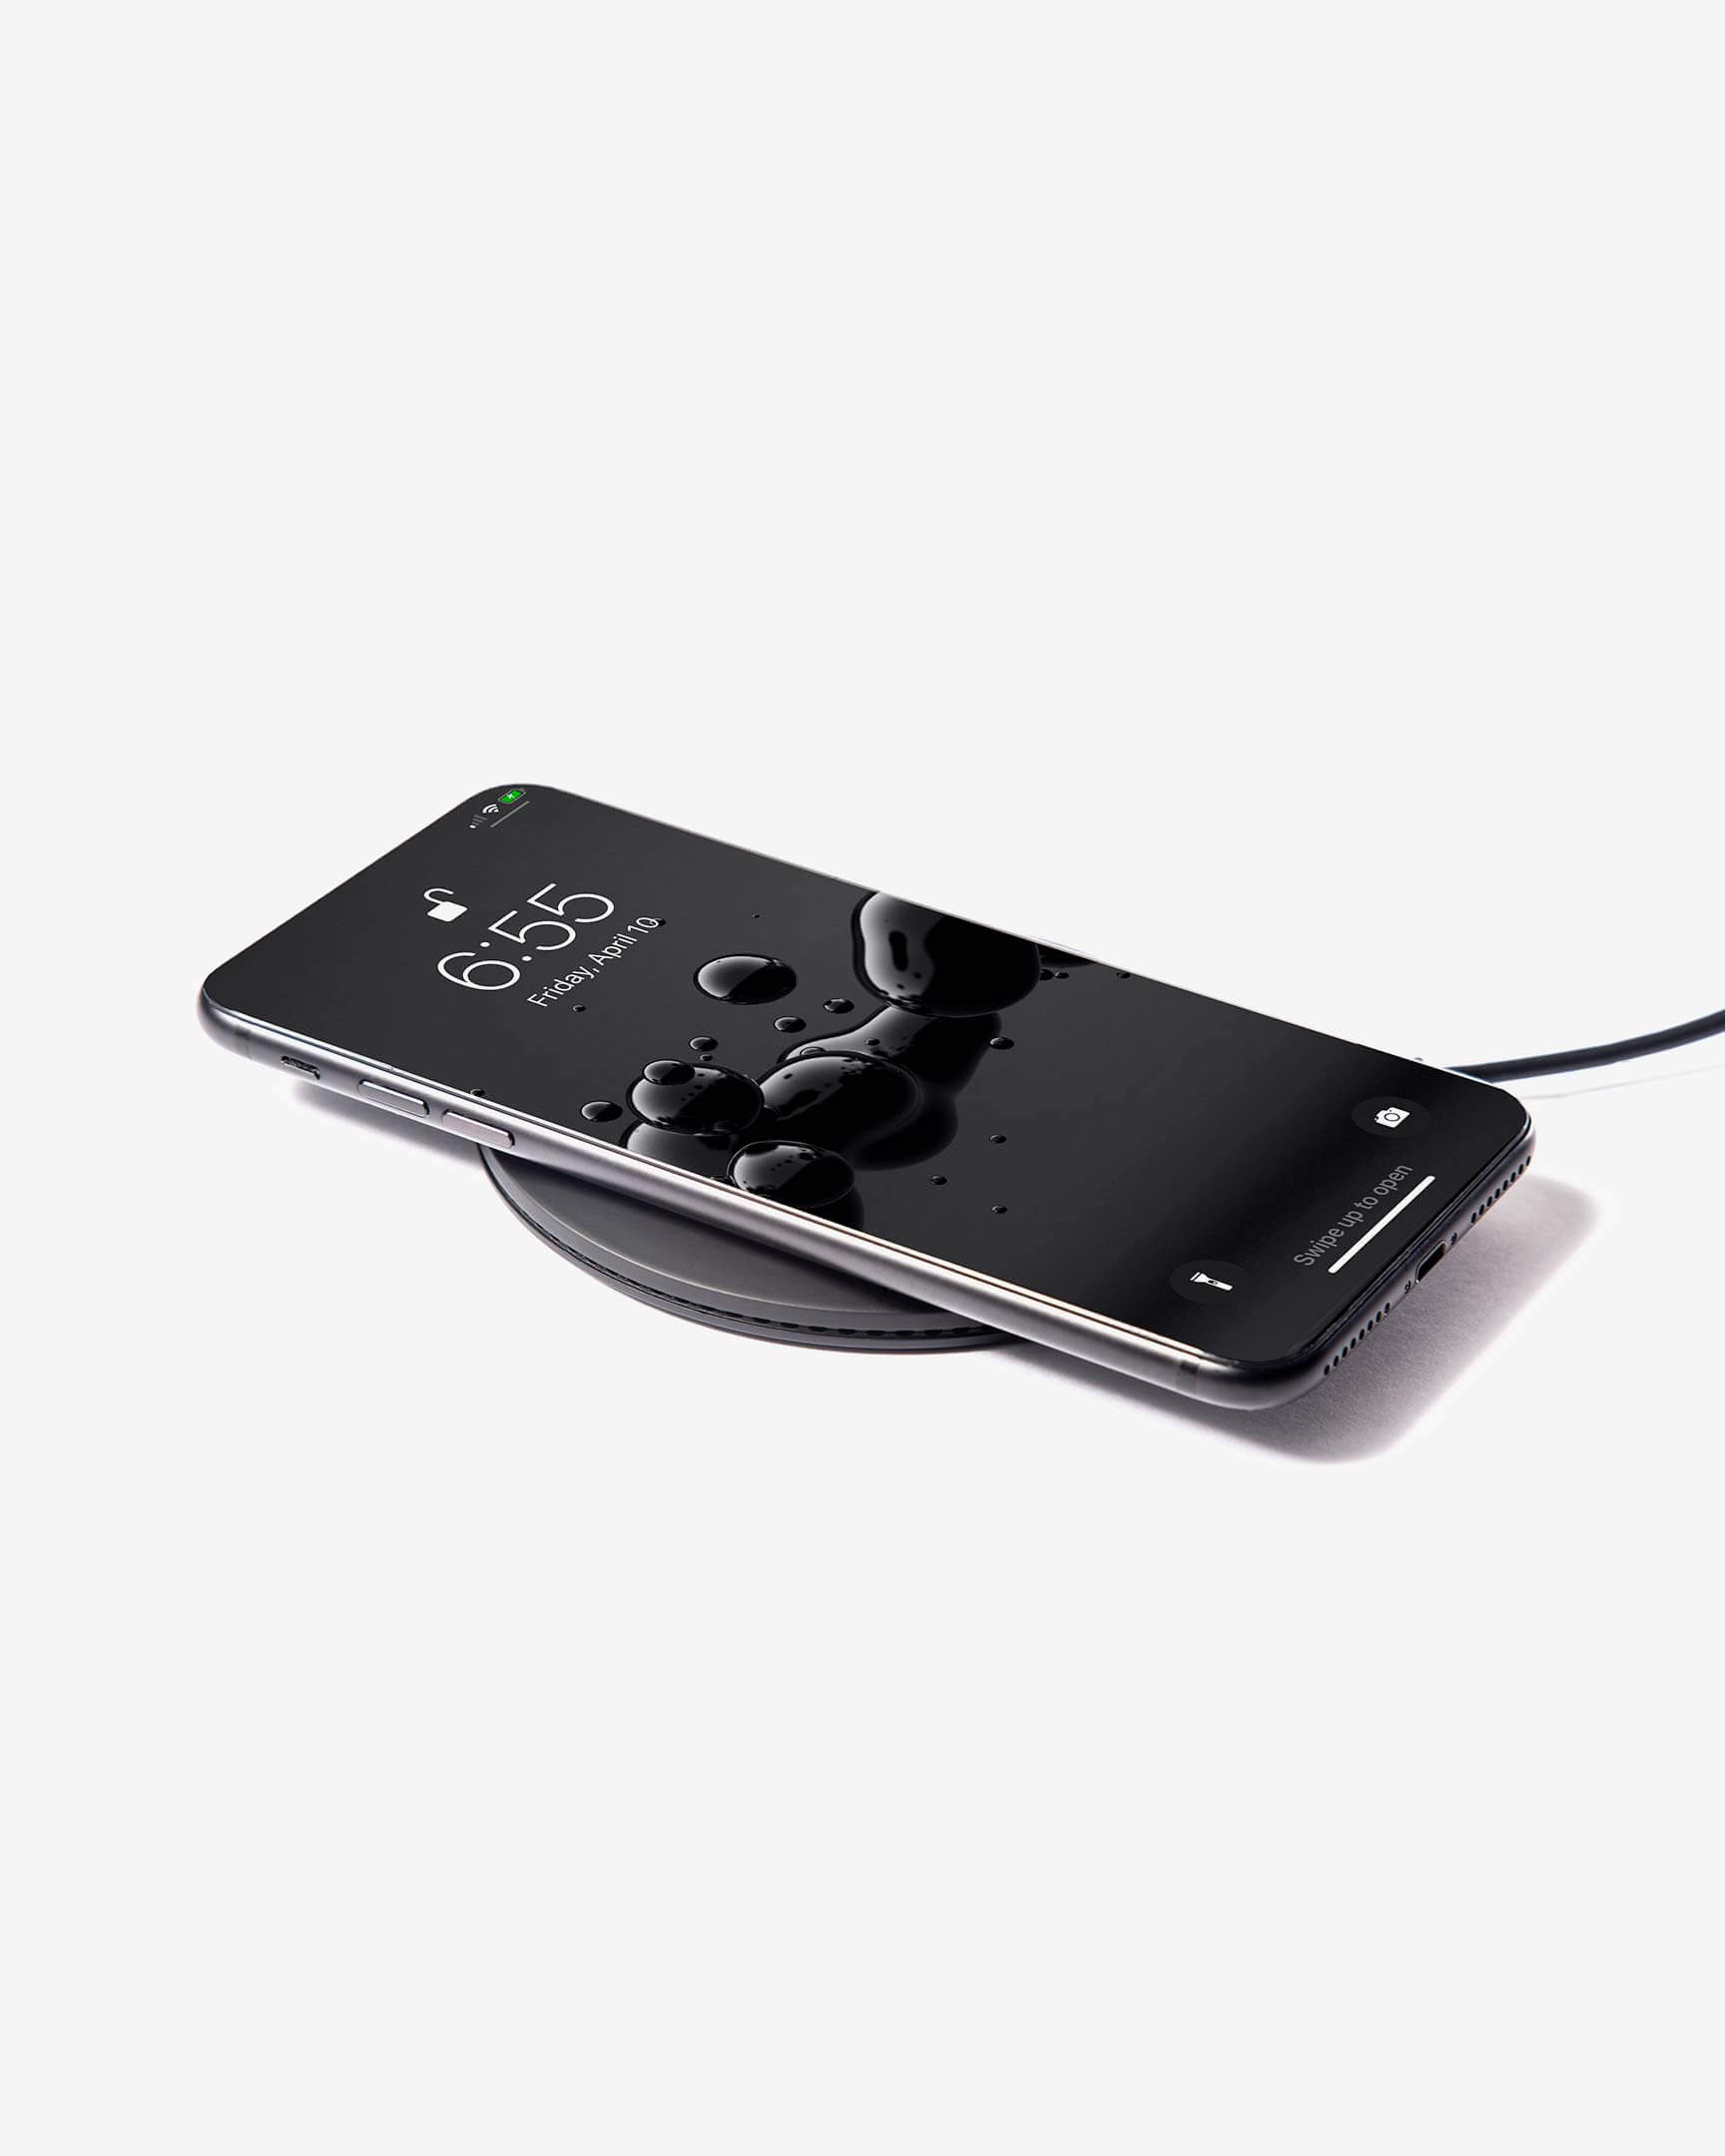 Tylt Shield phone on top